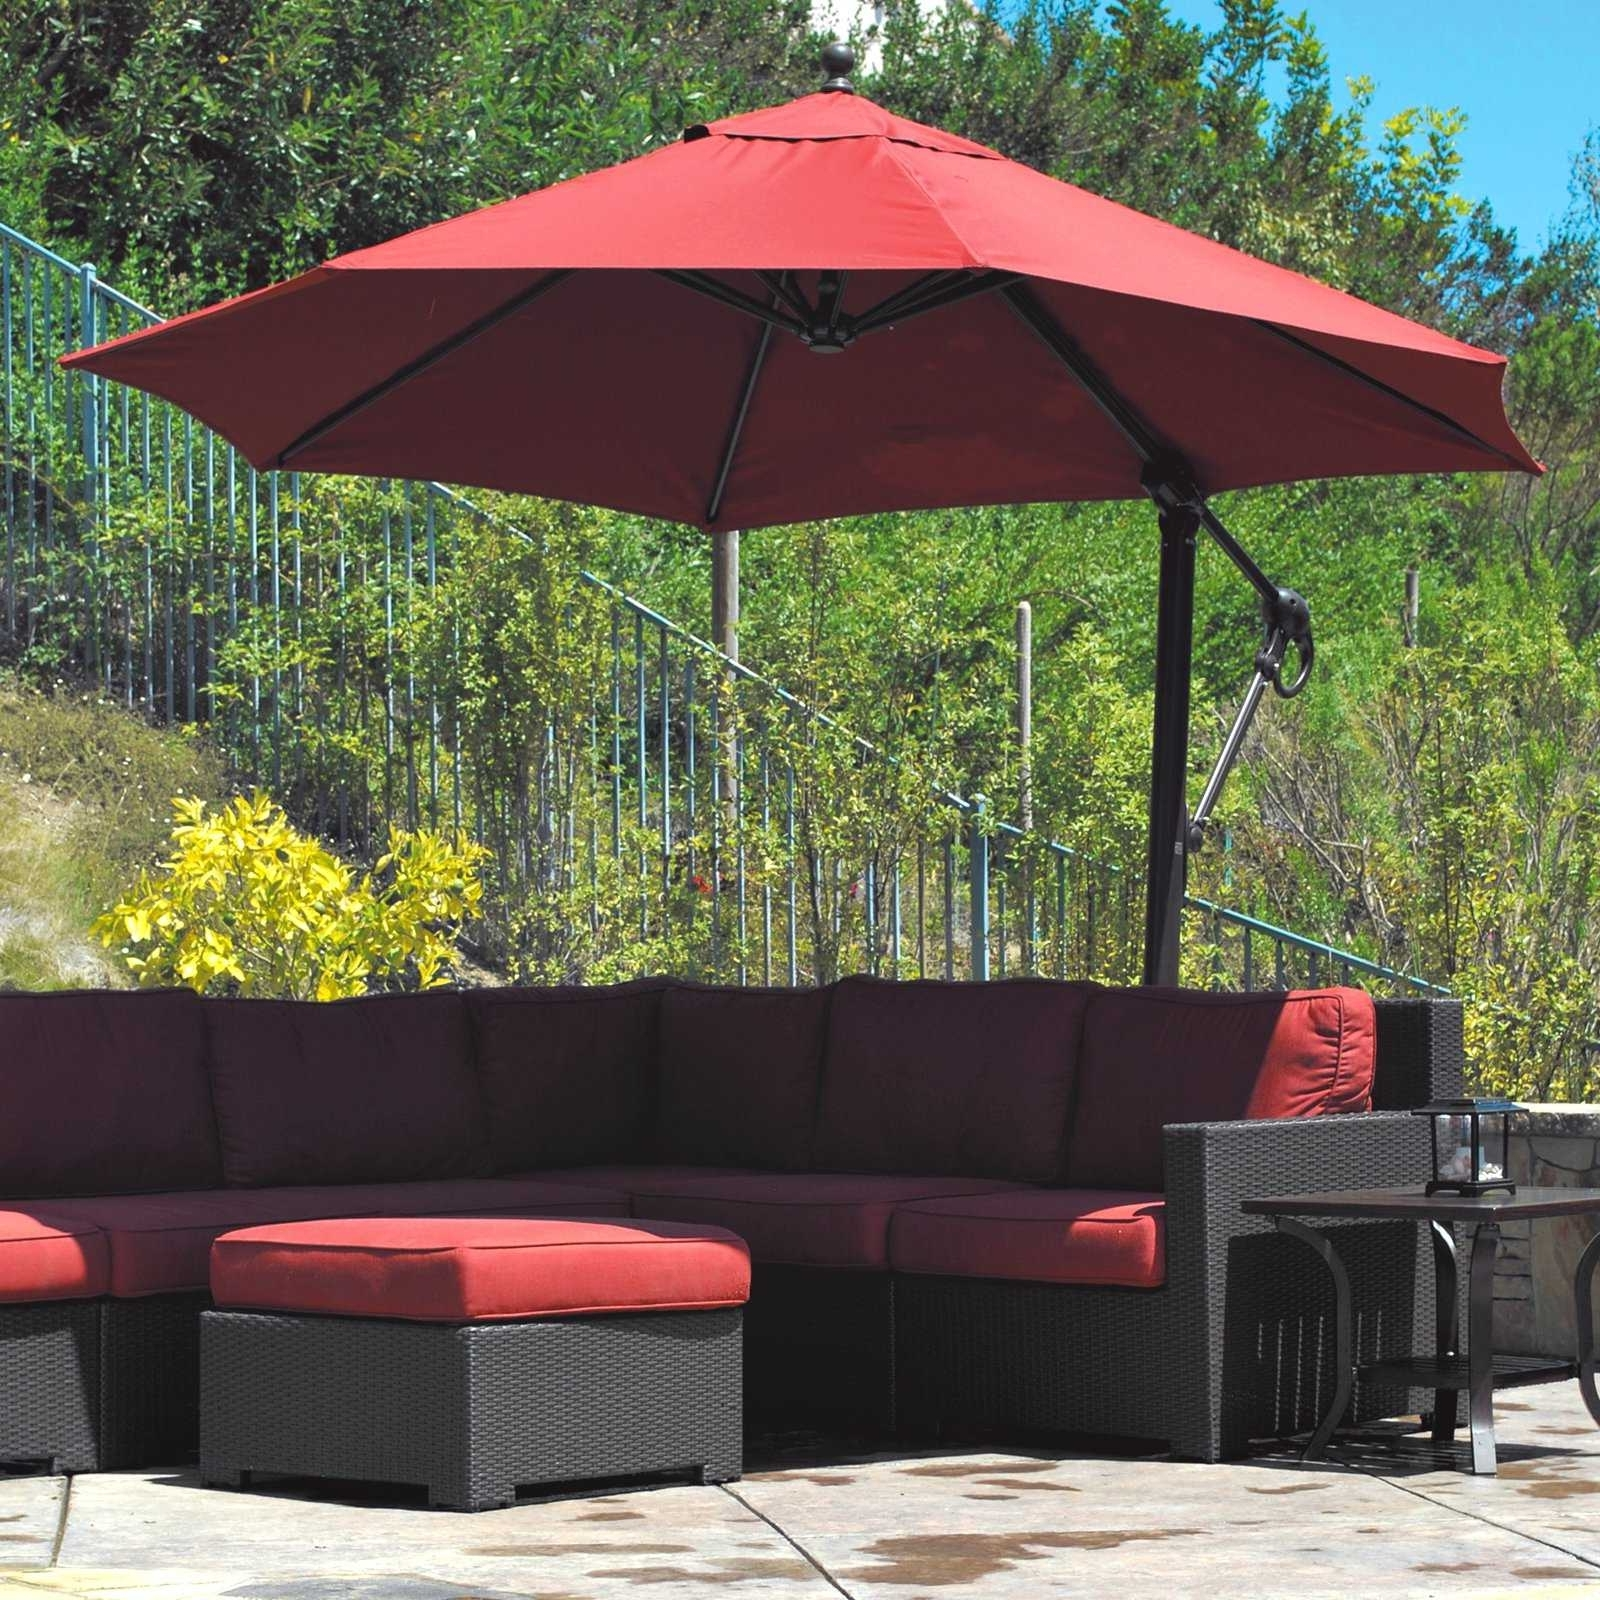 Big Lots Patio Umbrellas Intended For Widely Used Outstanding Patio Umbrellas Ideas Trends And At Big Lots With (View 8 of 20)